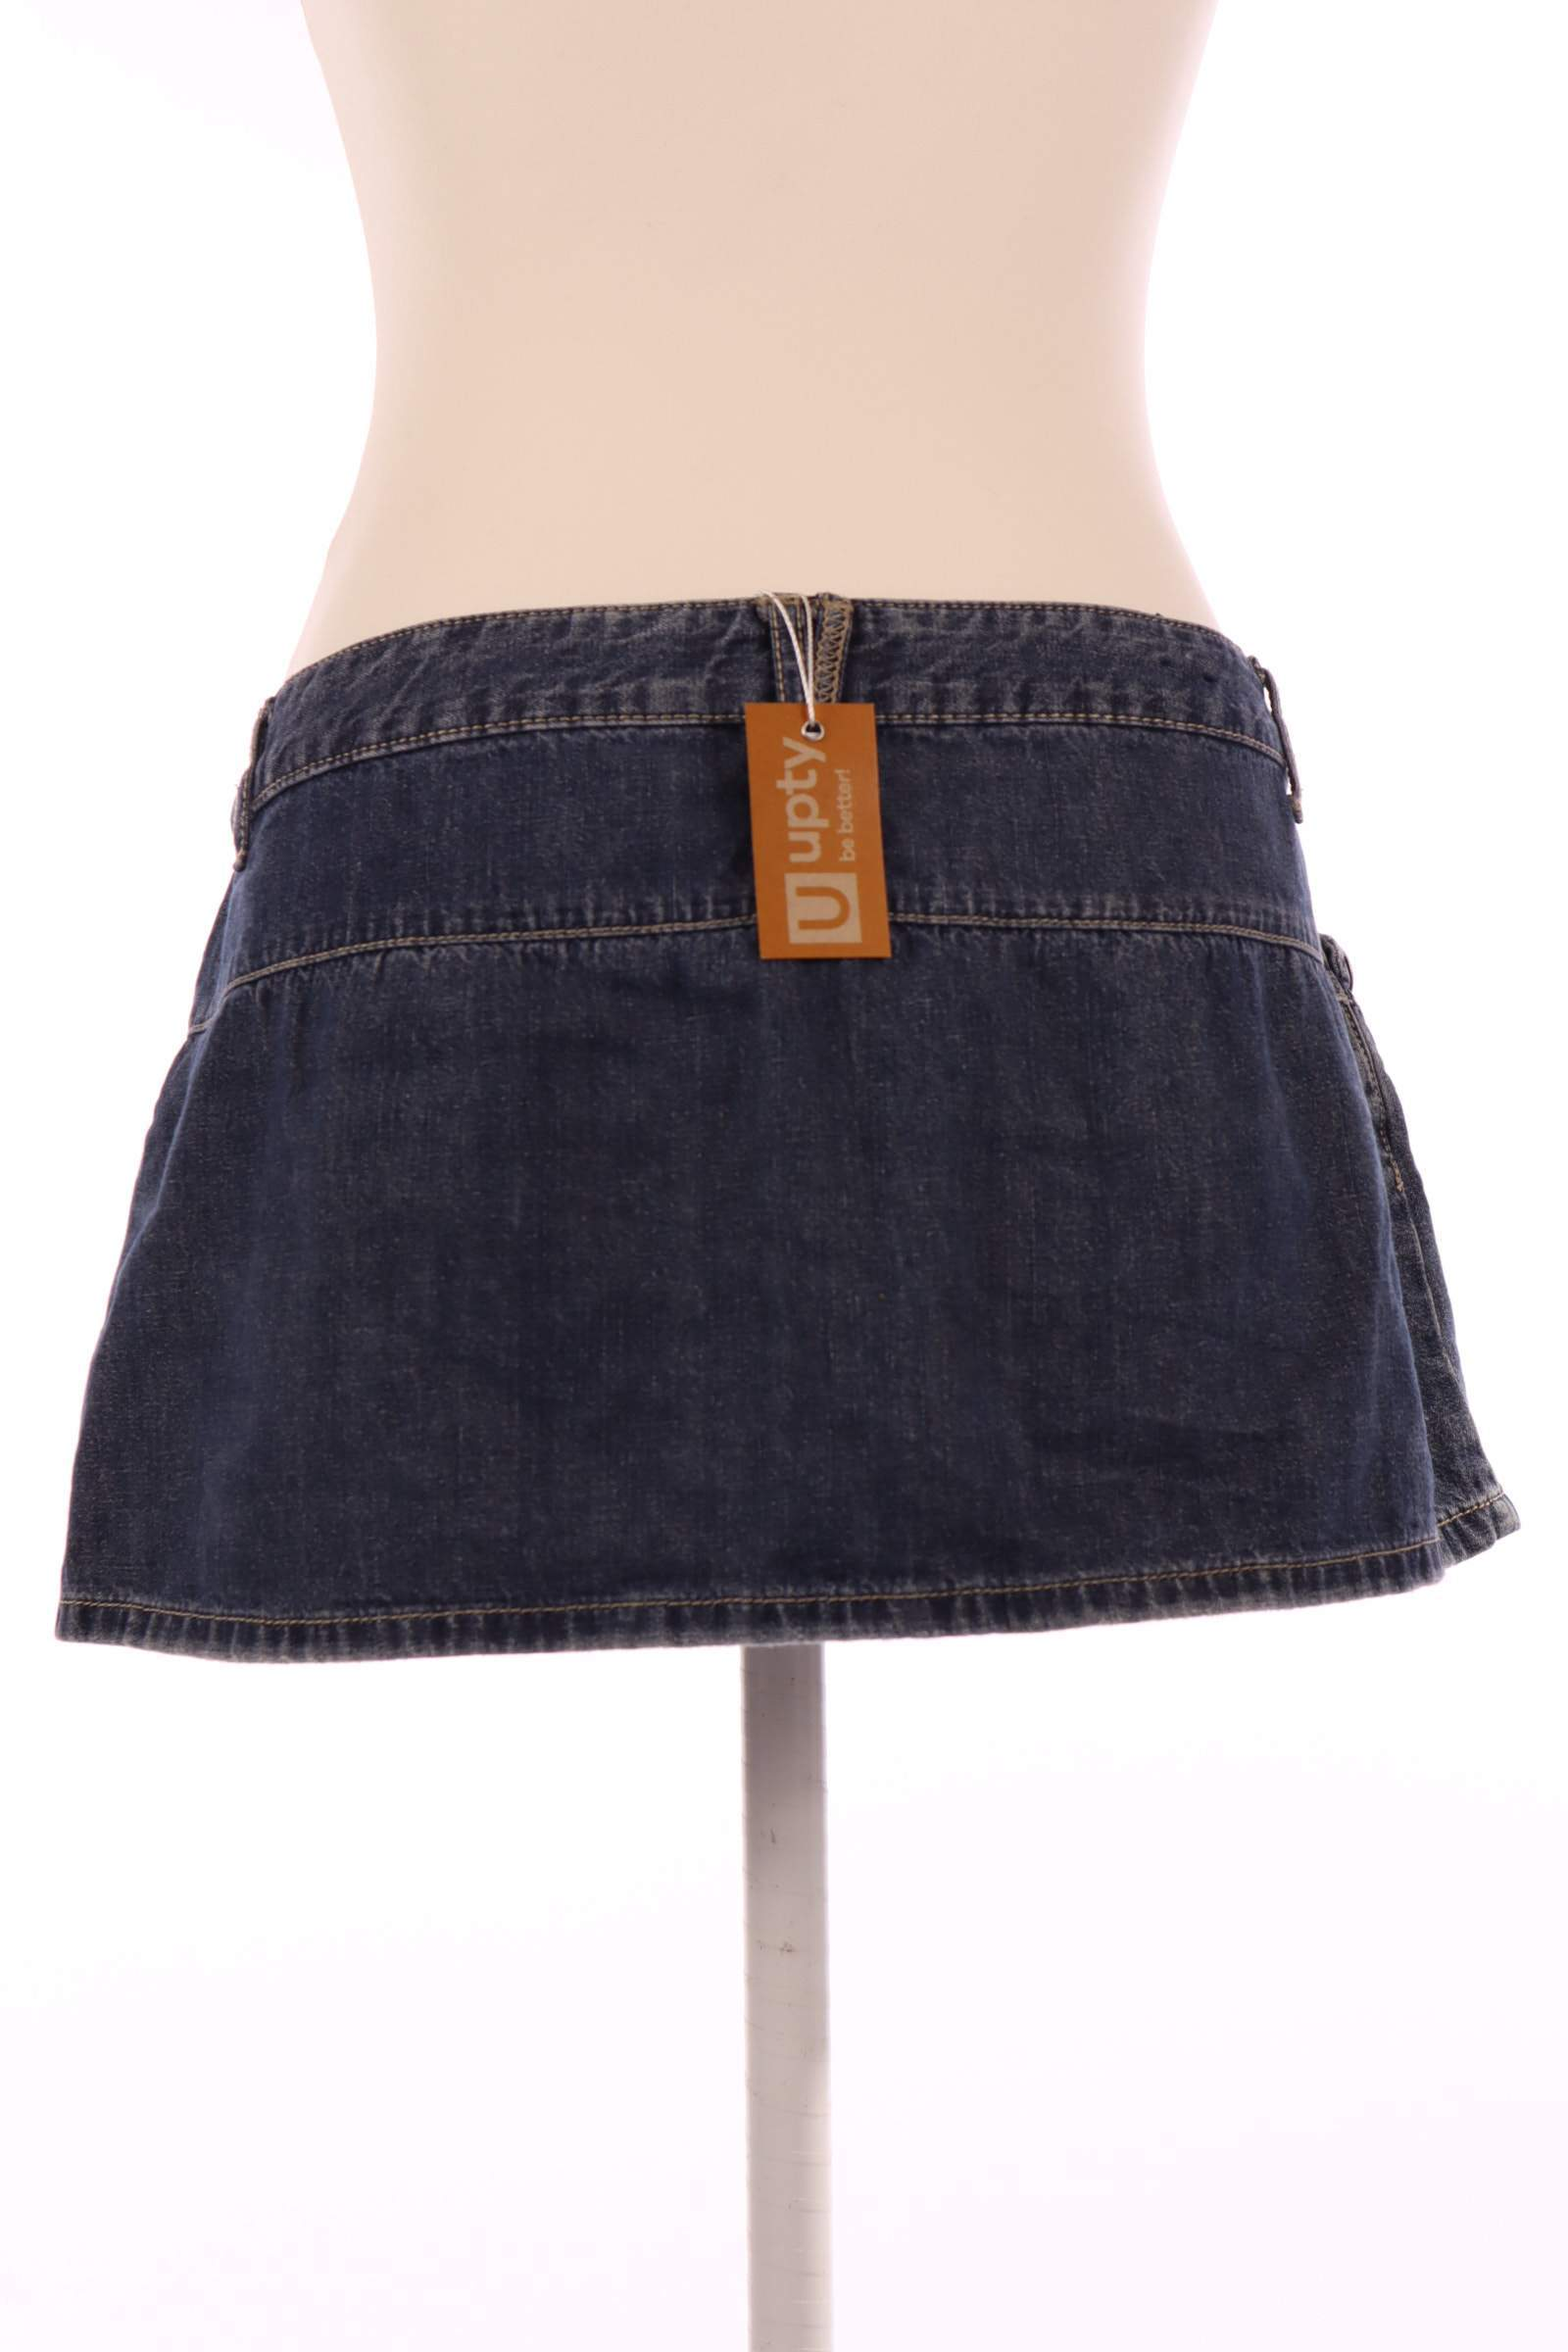 Billabong Black Skirt - upty.store